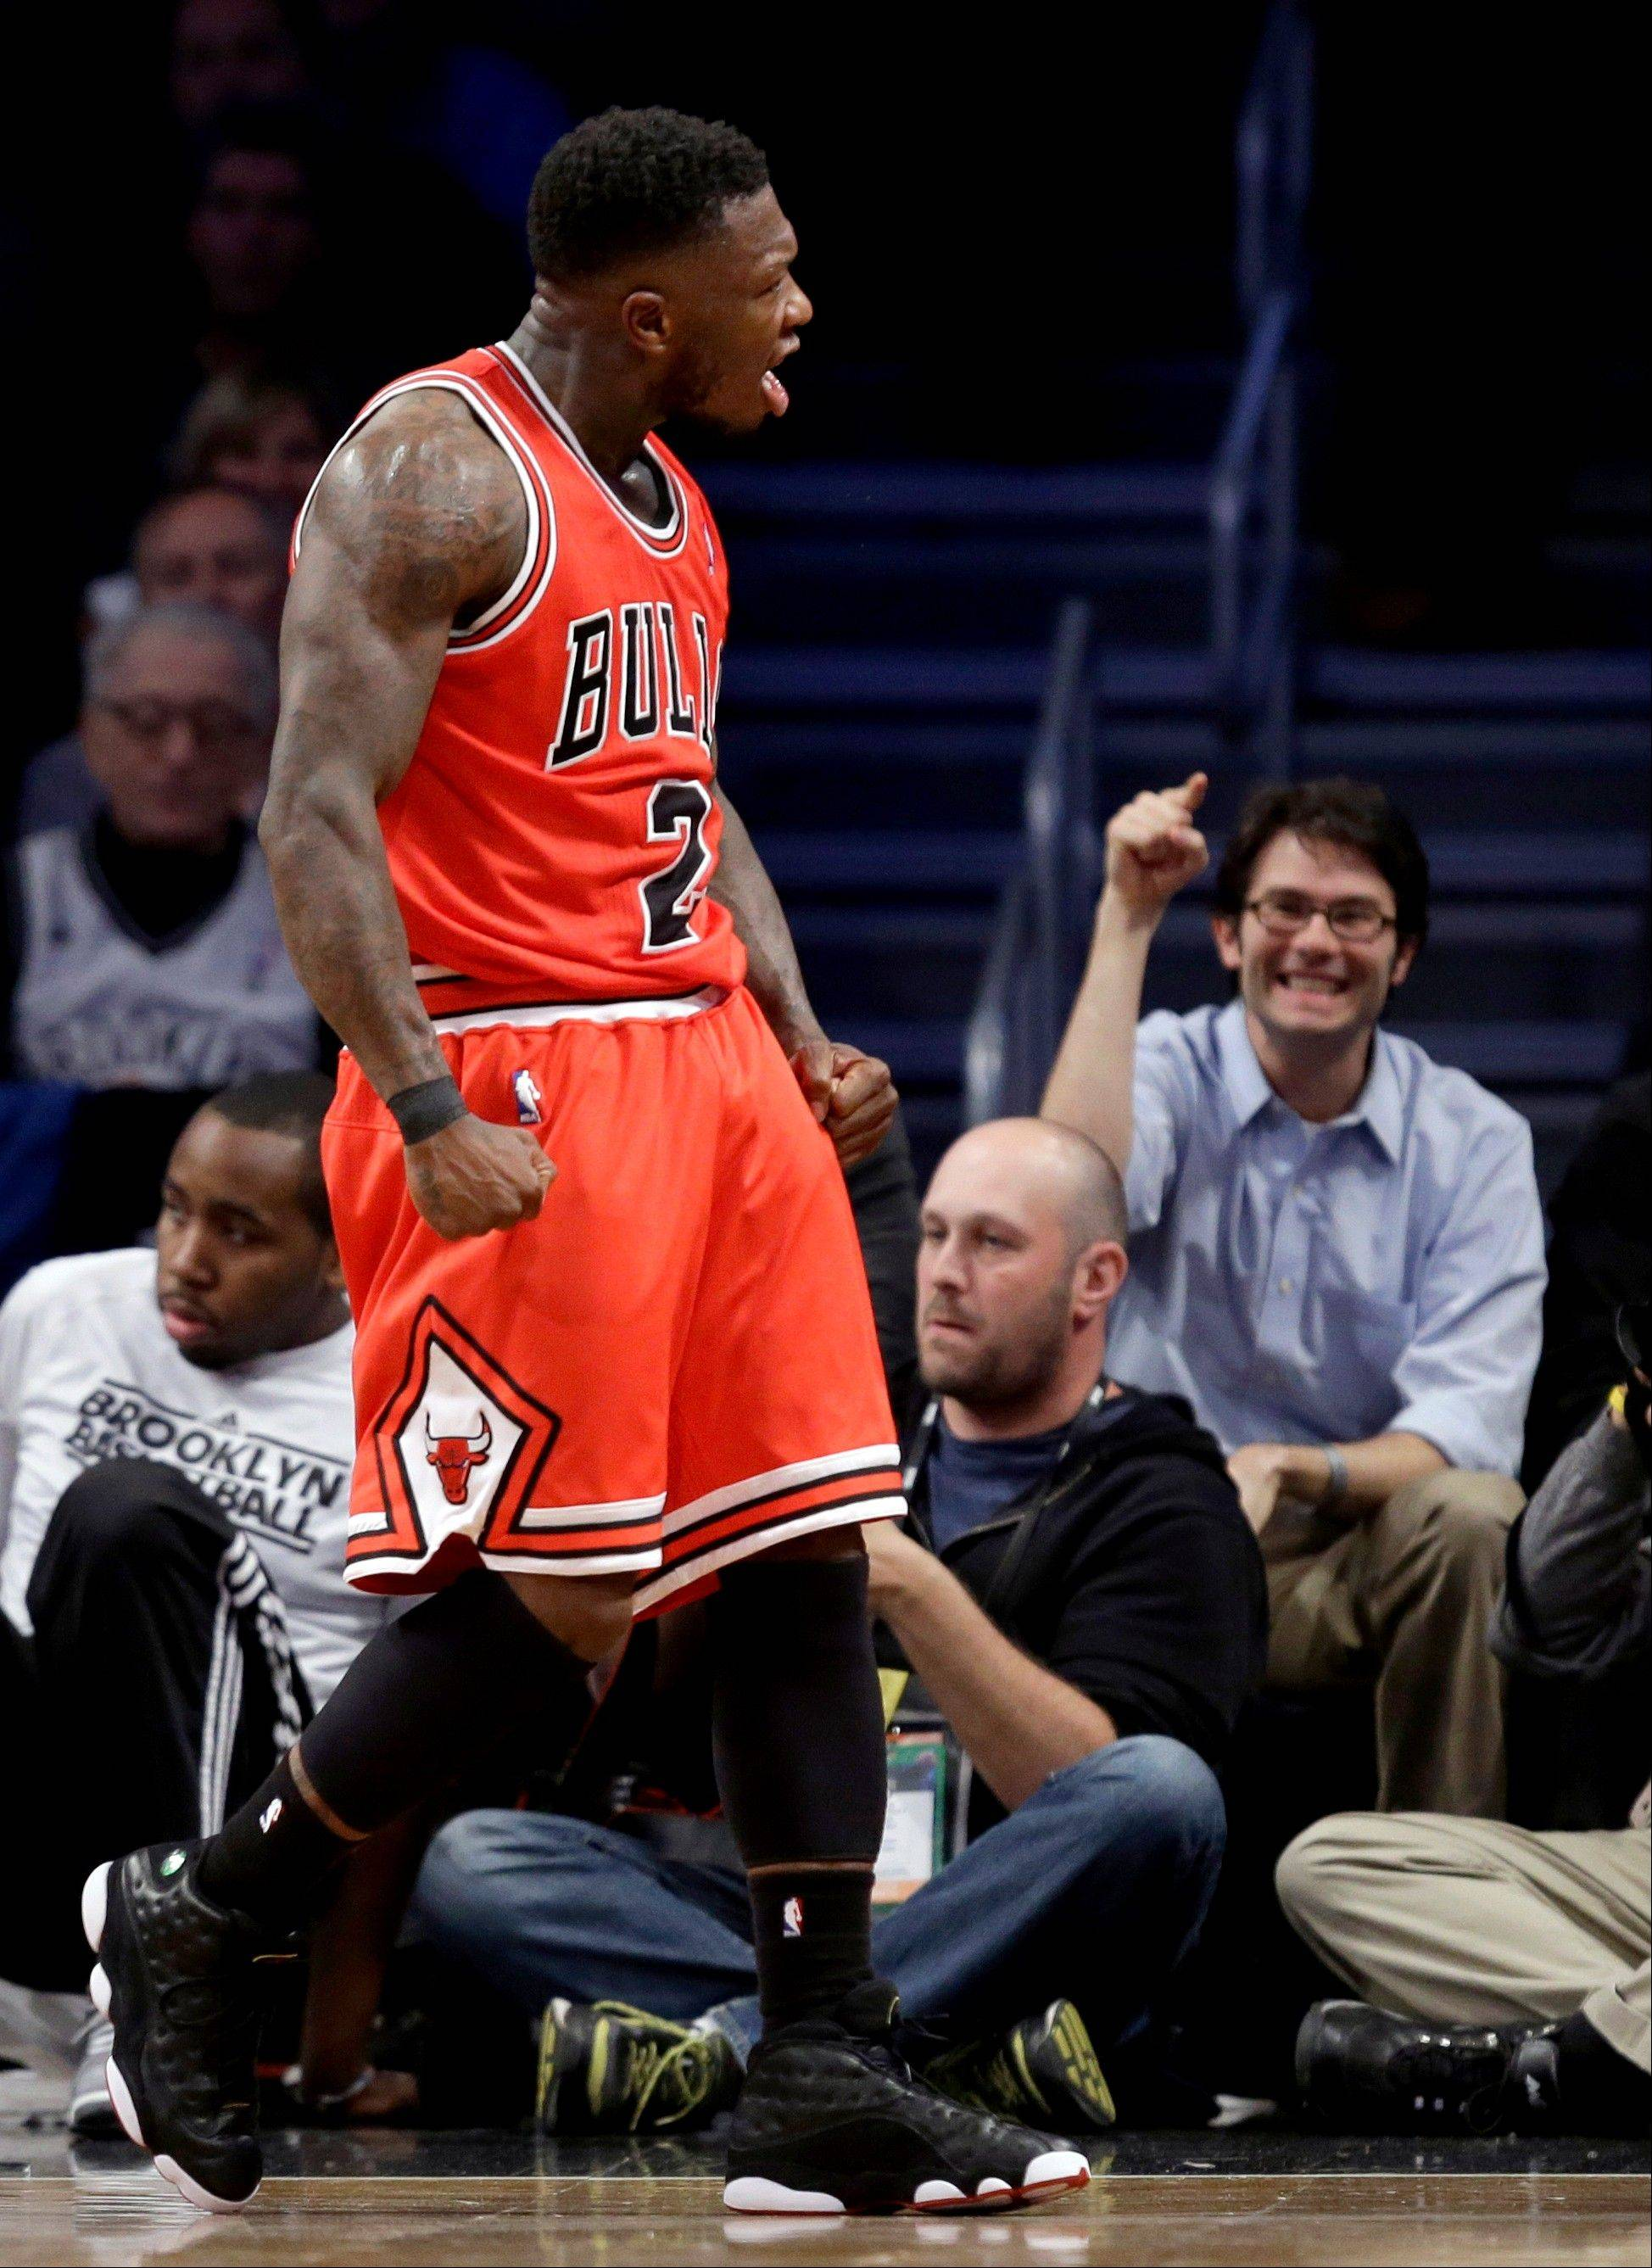 Chicago Bulls guard Nate Robinson (2) reacts after scoring in the first half of Game 5 of their first-round NBA basketball playoff series against the Brooklyn Nets, Monday, April 29, 2013, in New York.